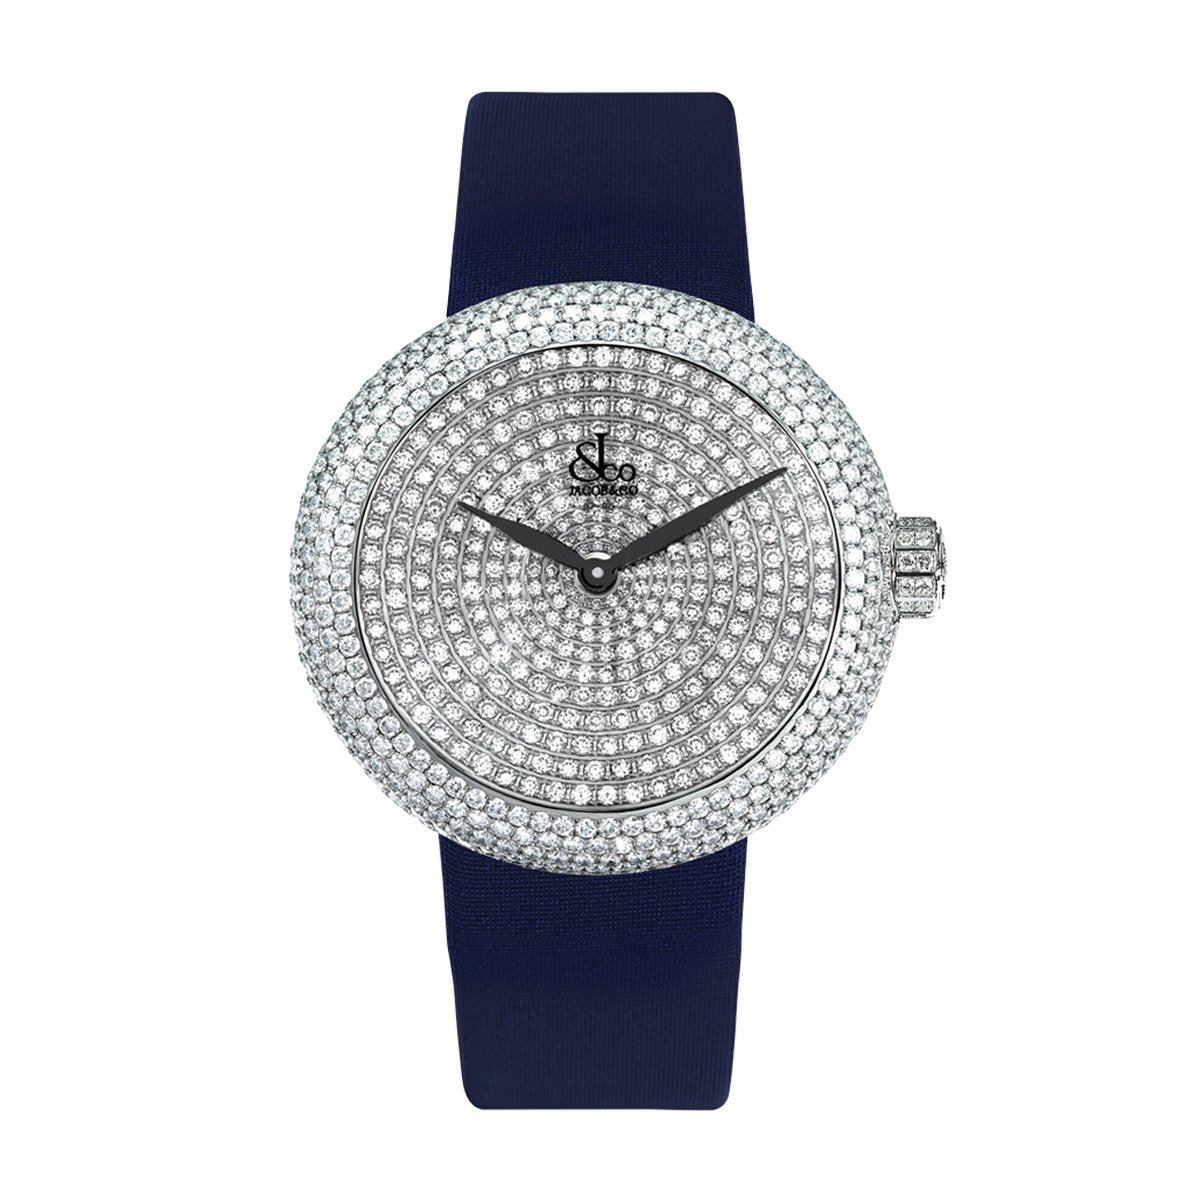 Jacob & Co. Brilliant Pave 38 - Watches & Crystals